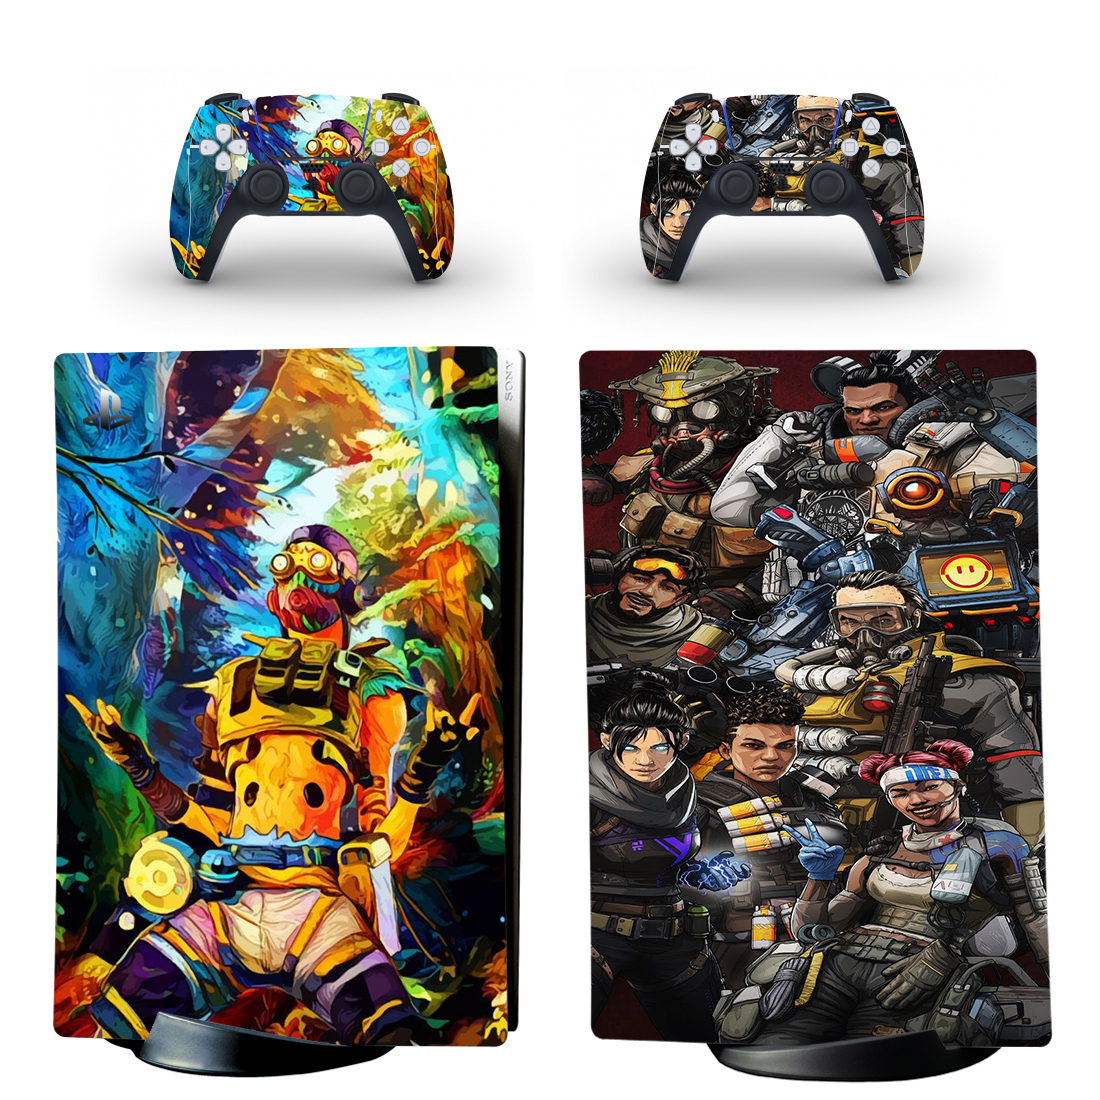 Apex Legends Skin Sticker Decal For PS5 Digital Edition And Controllers